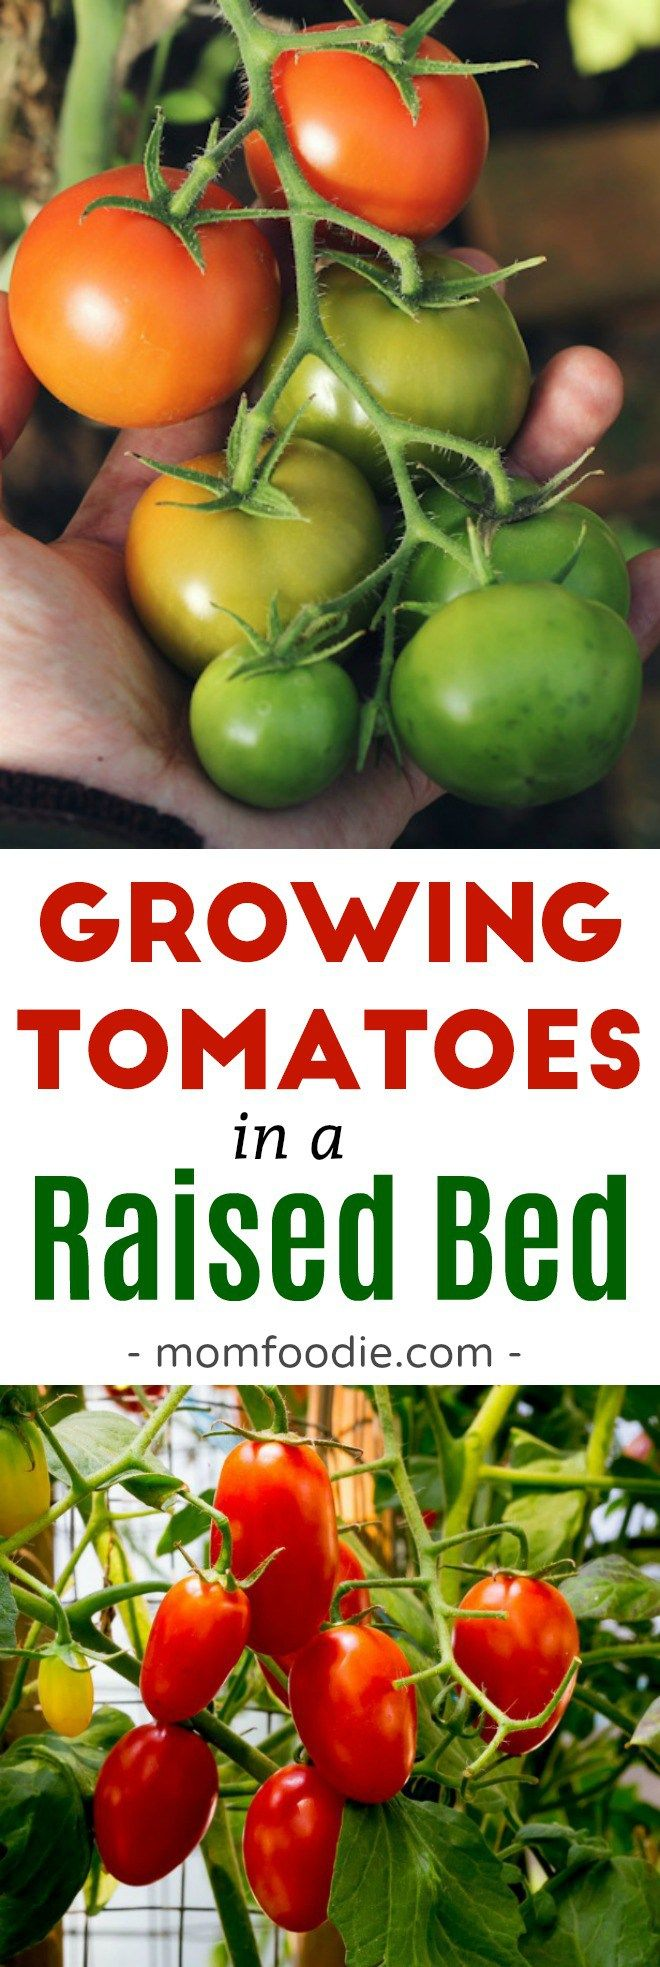 How to Grow Tomatoes in a Raised Bed (With images